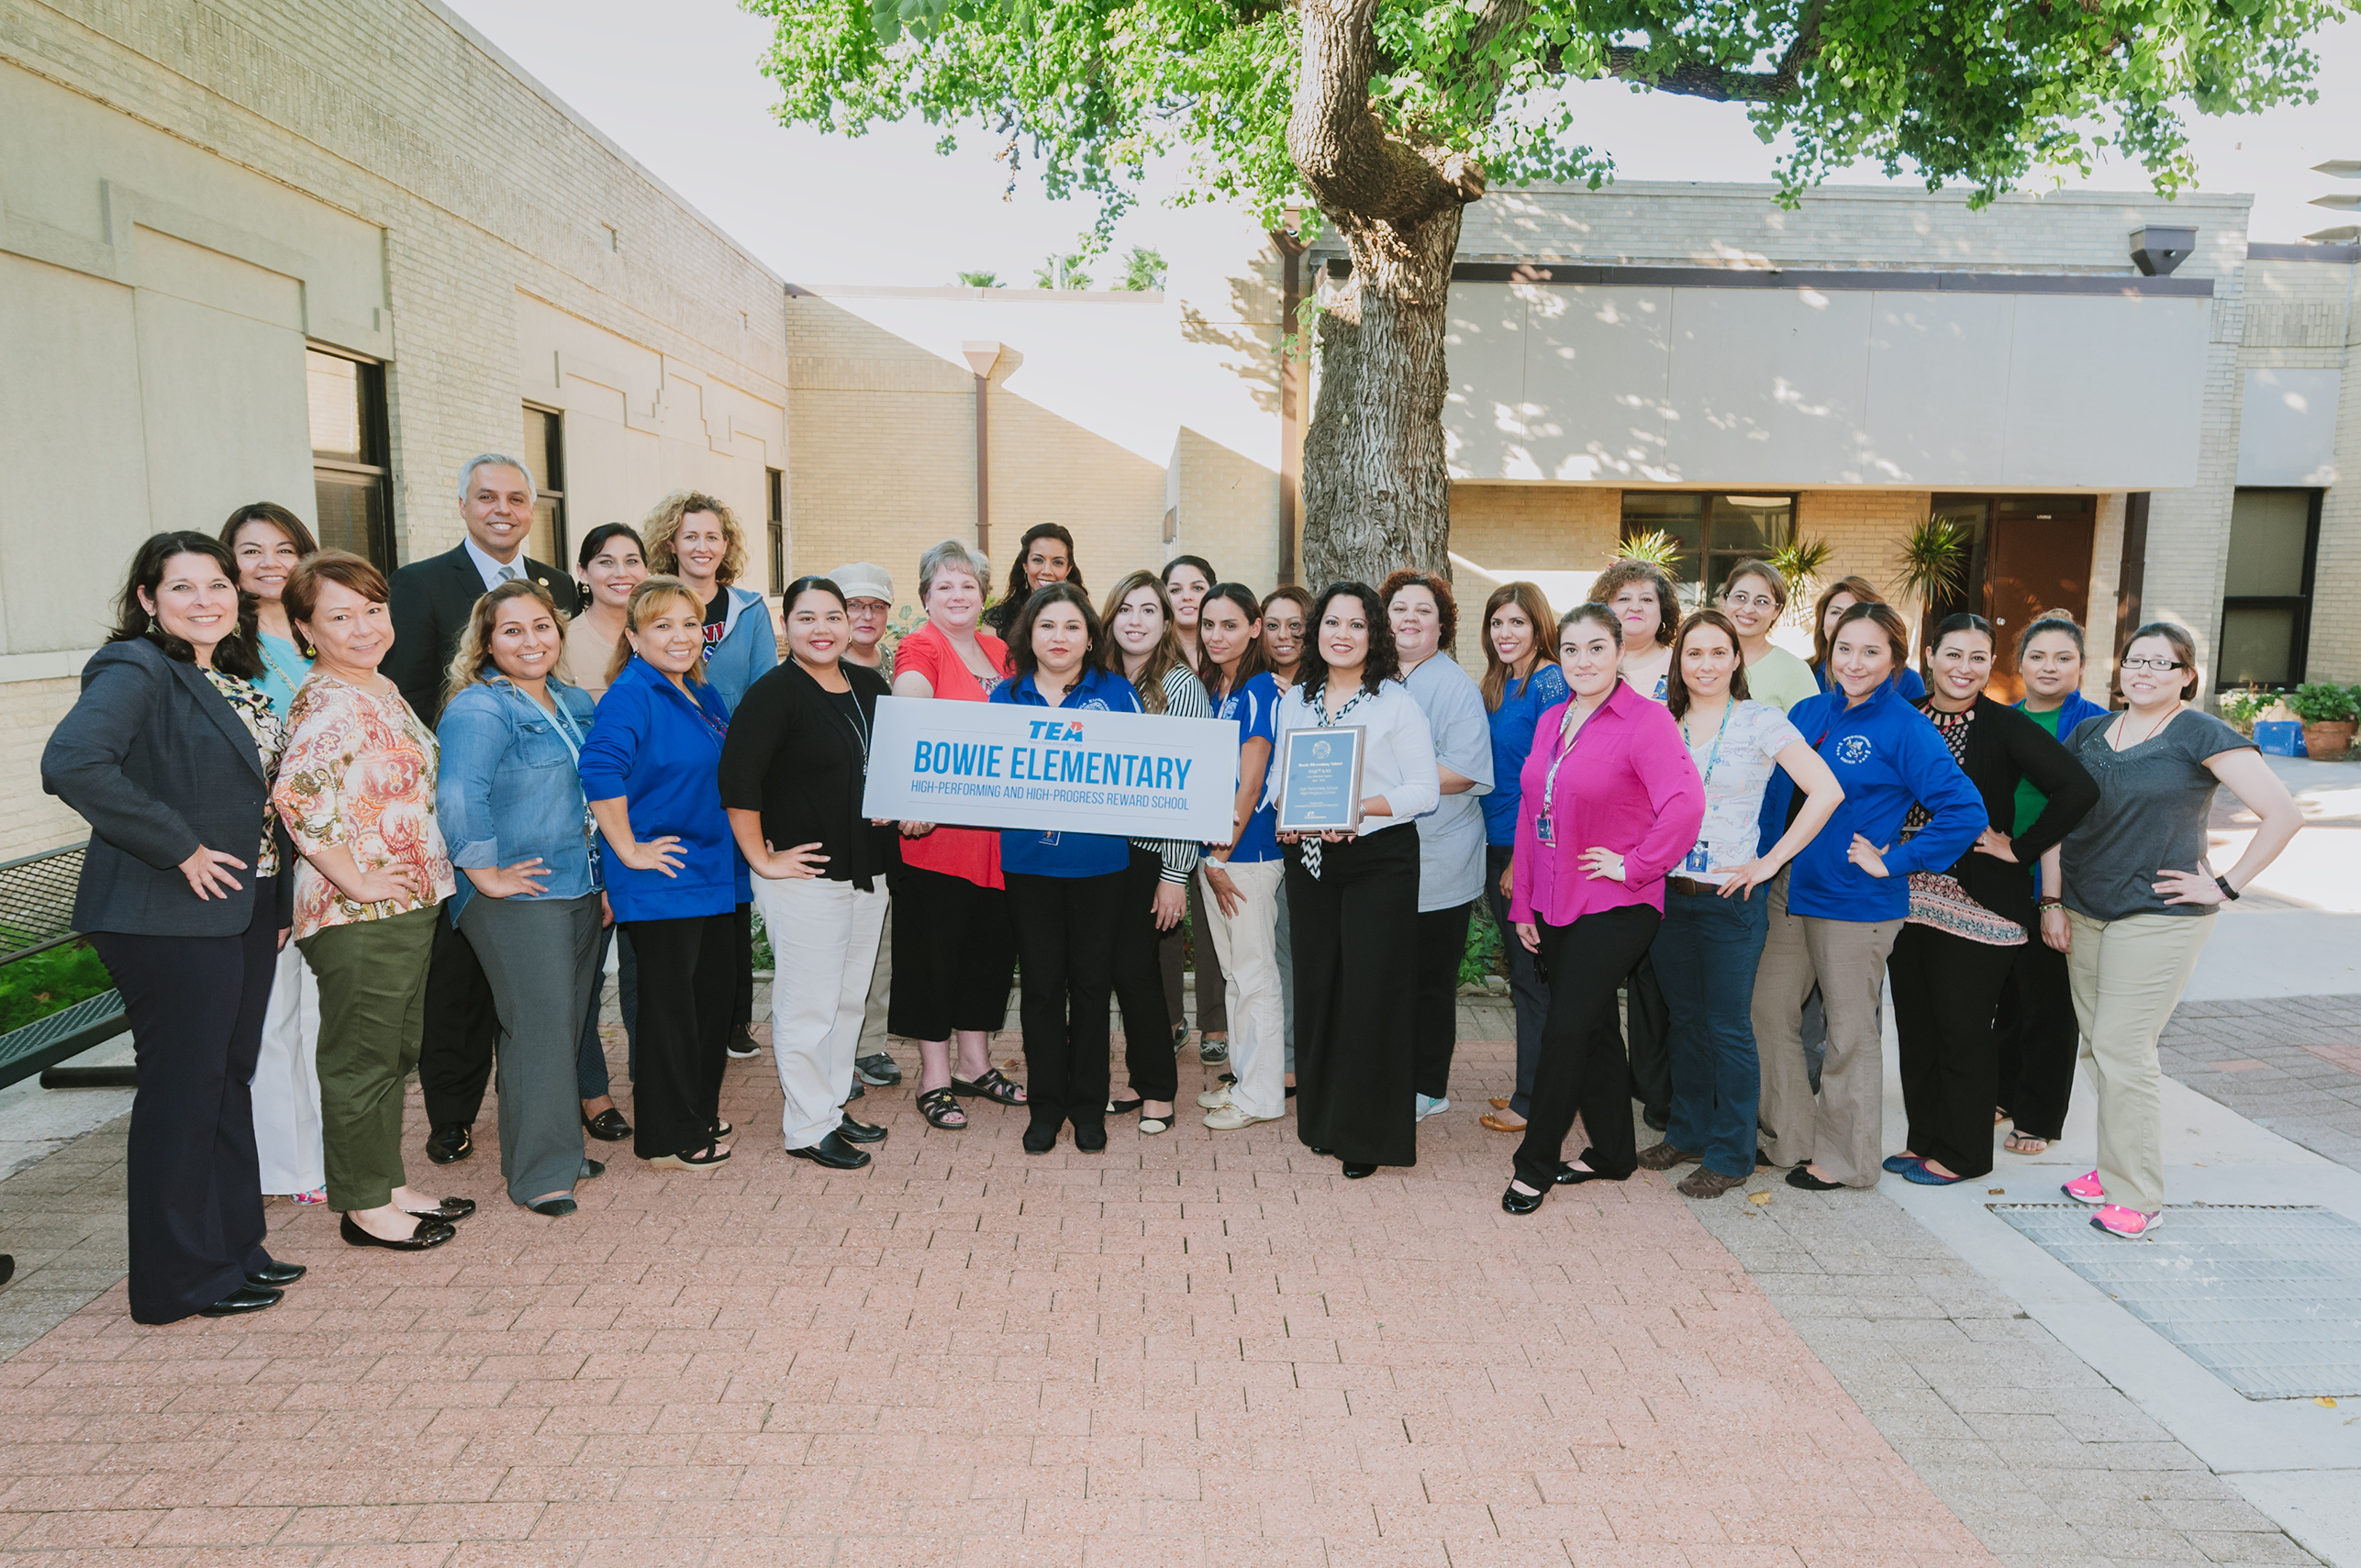 TEA names Bowie Elementary as a High-Performing and High-Progress Reward School